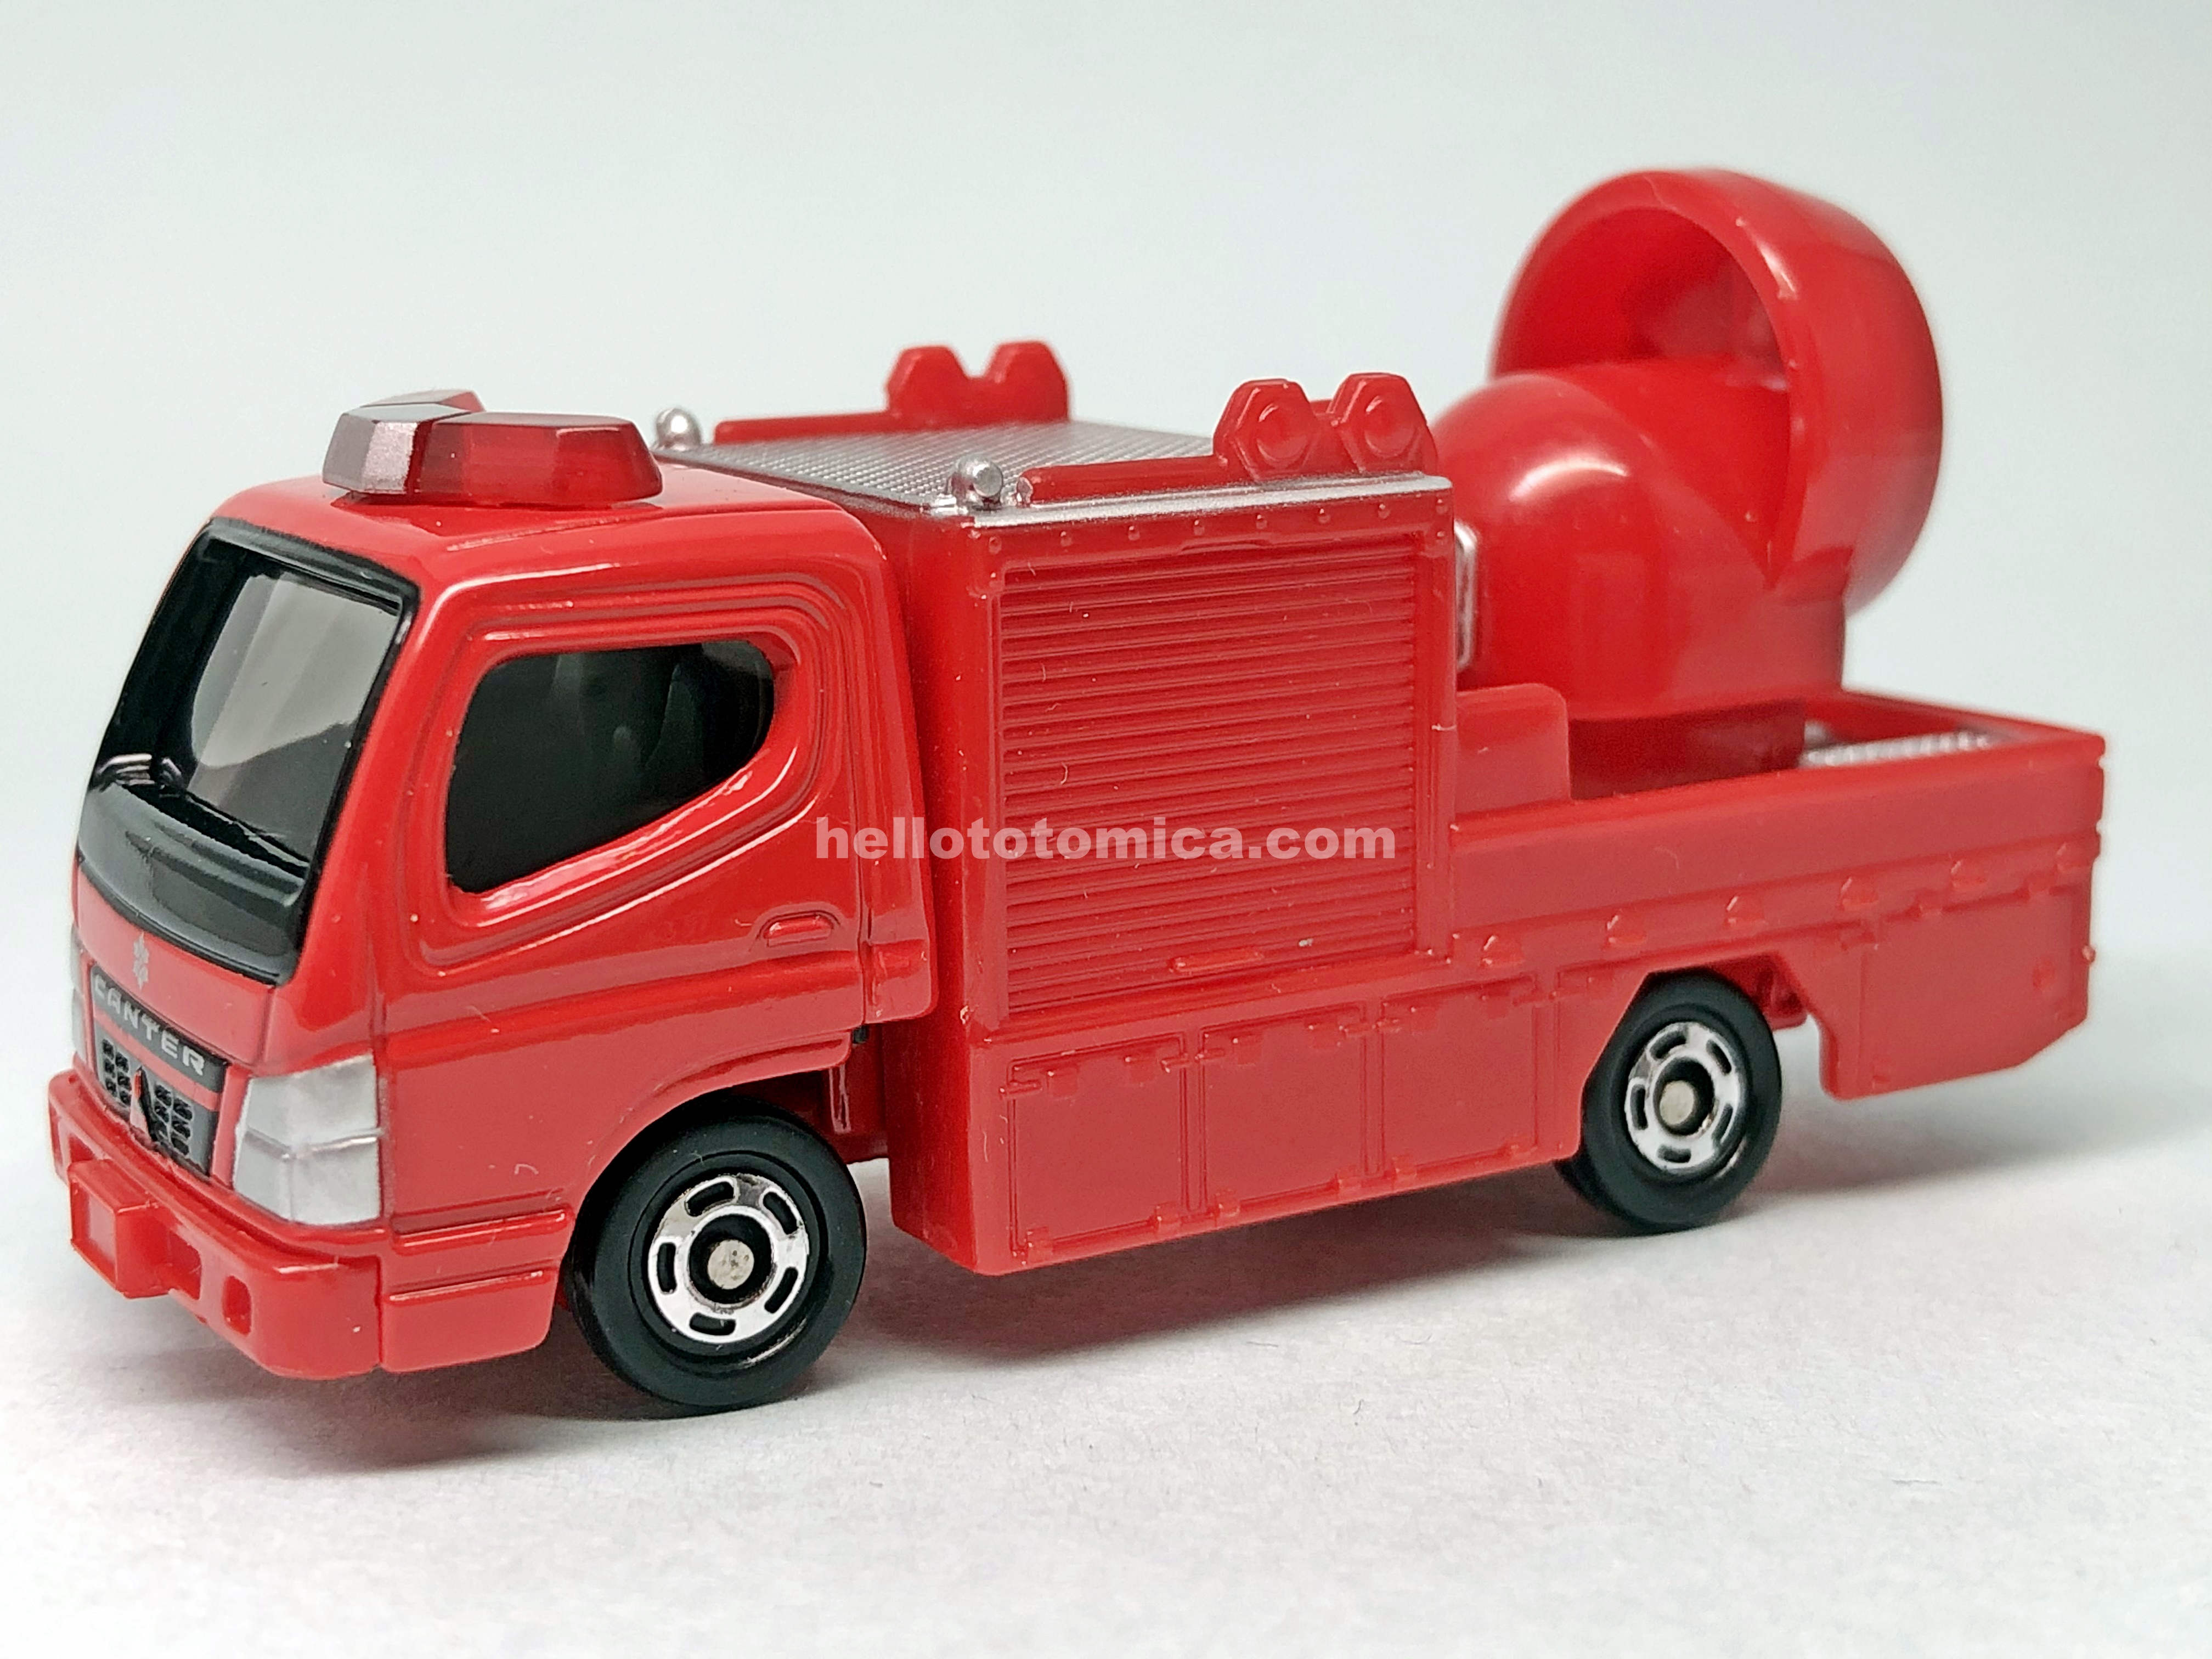 18-8 LARGE SIZE BLOWER TRUCK